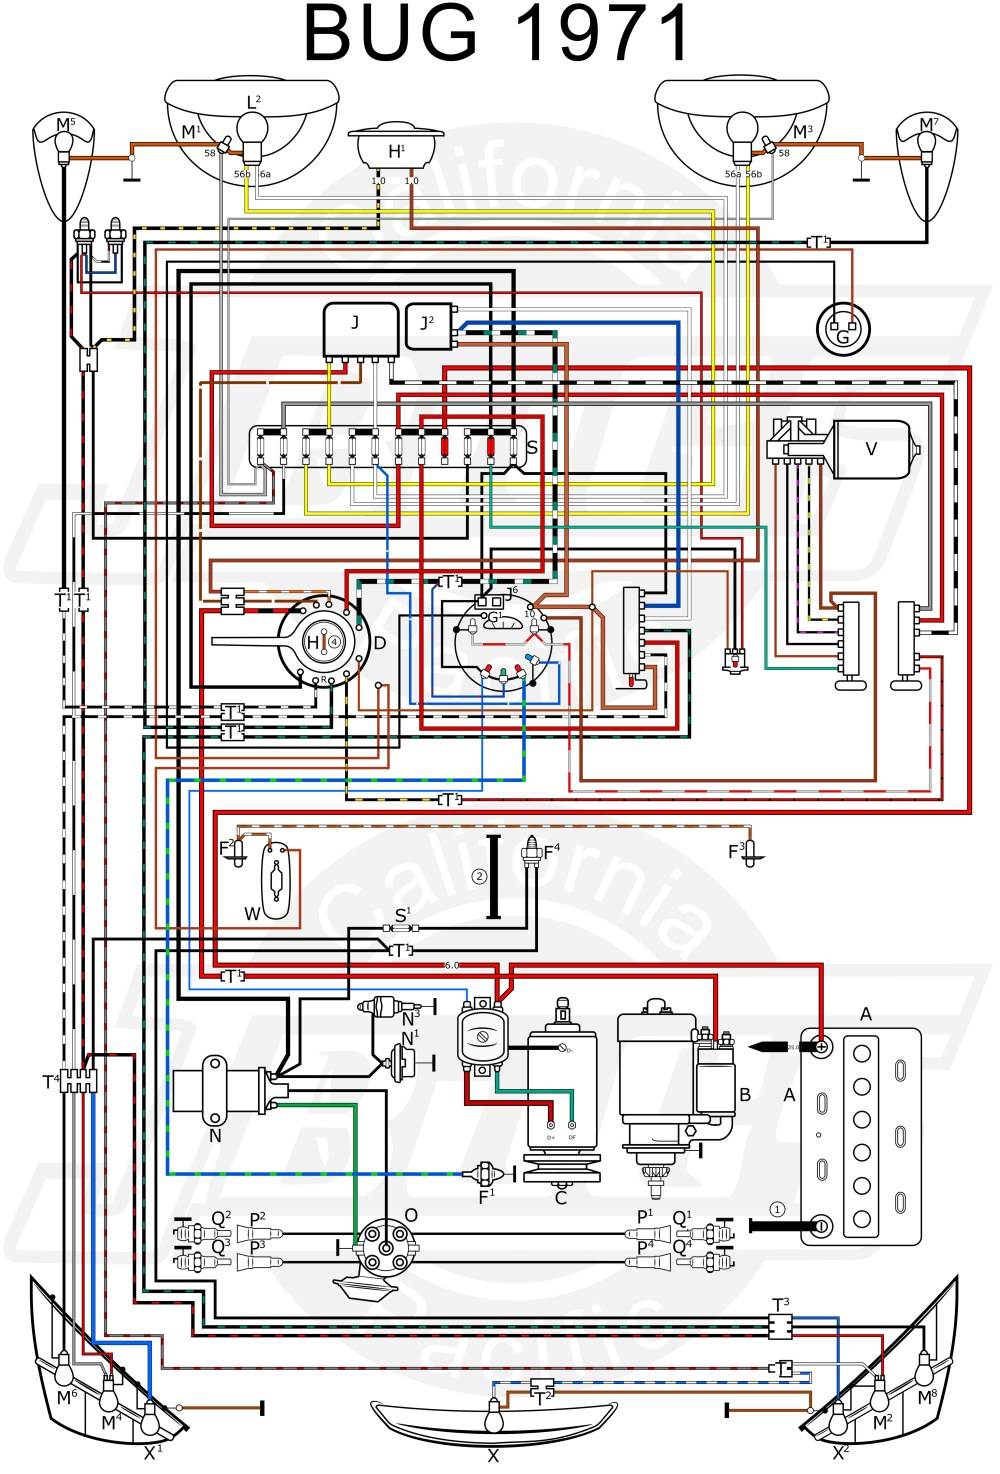 medium resolution of 69 beetle turn signal wiring schematic real wiring diagram u2022 rh mcmxliv co signal stat 900